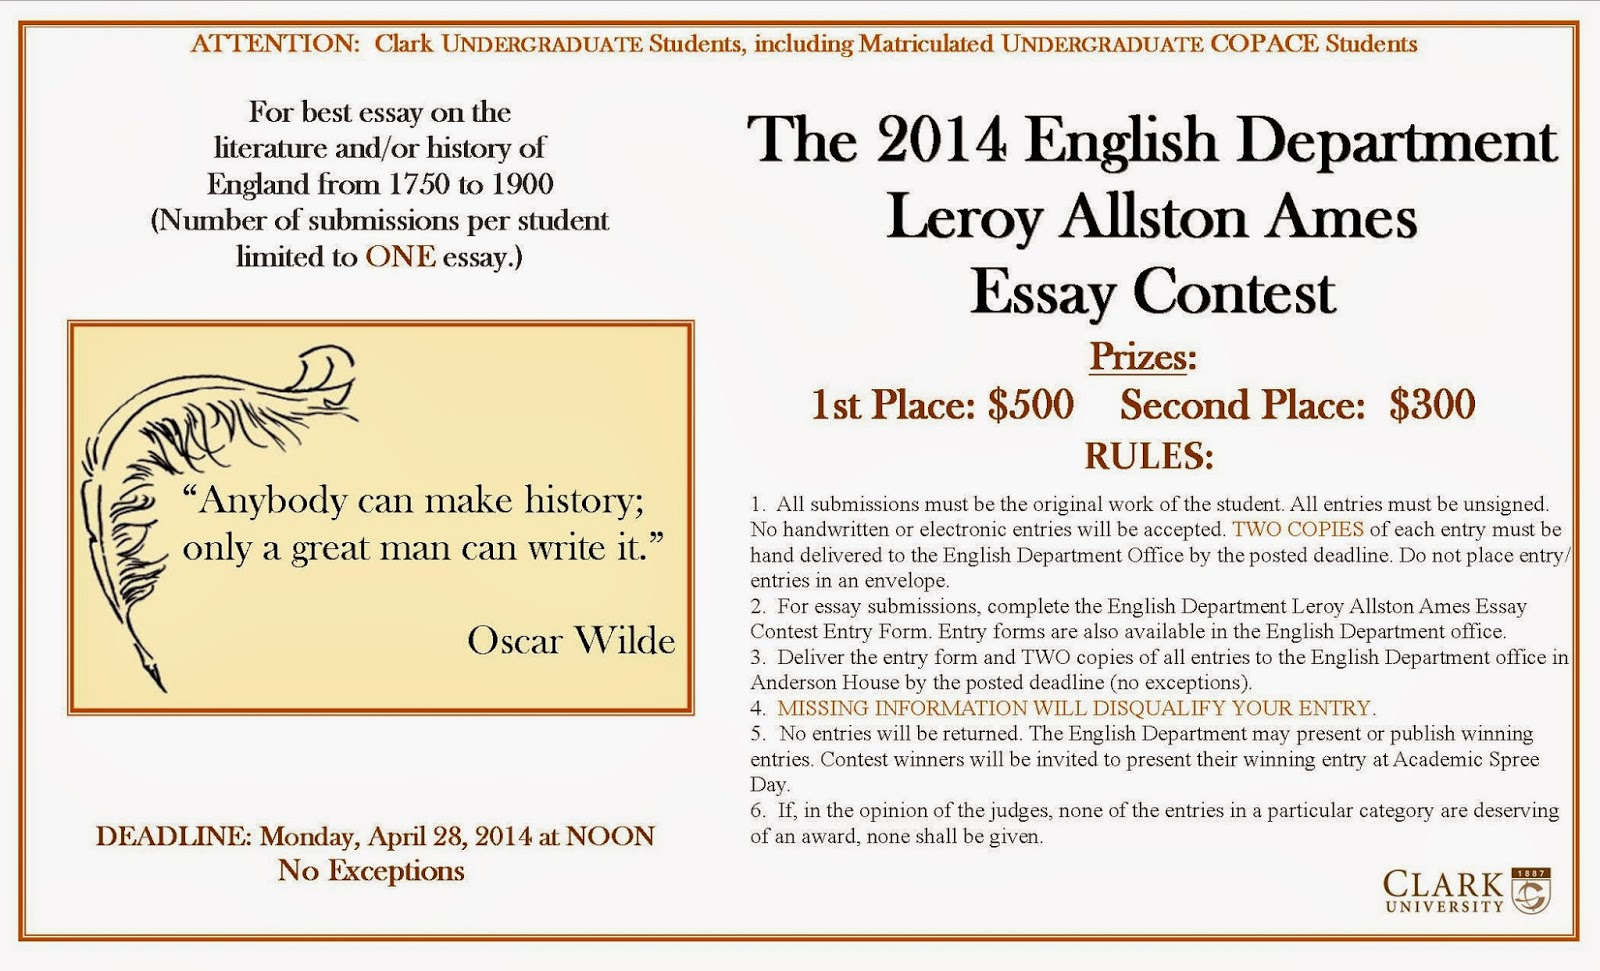 002 Essay Example Contests Imposing 2014 Maryknoll Contest Winners Full